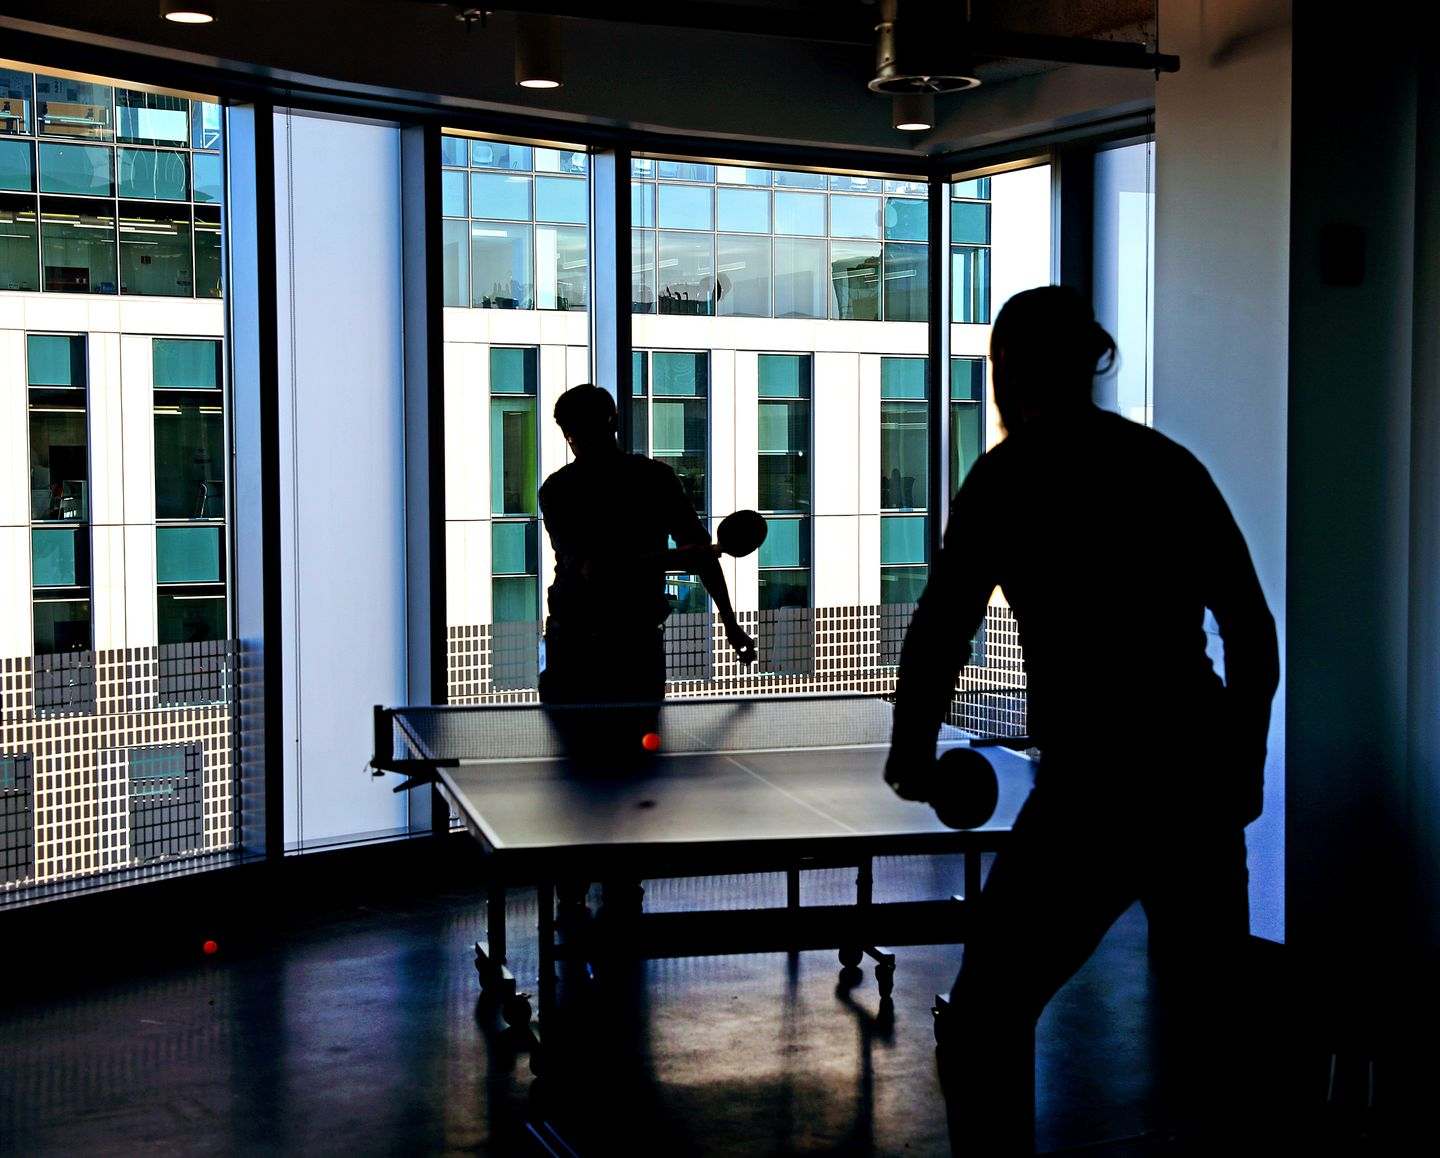 Employees took a break playing table tennis.